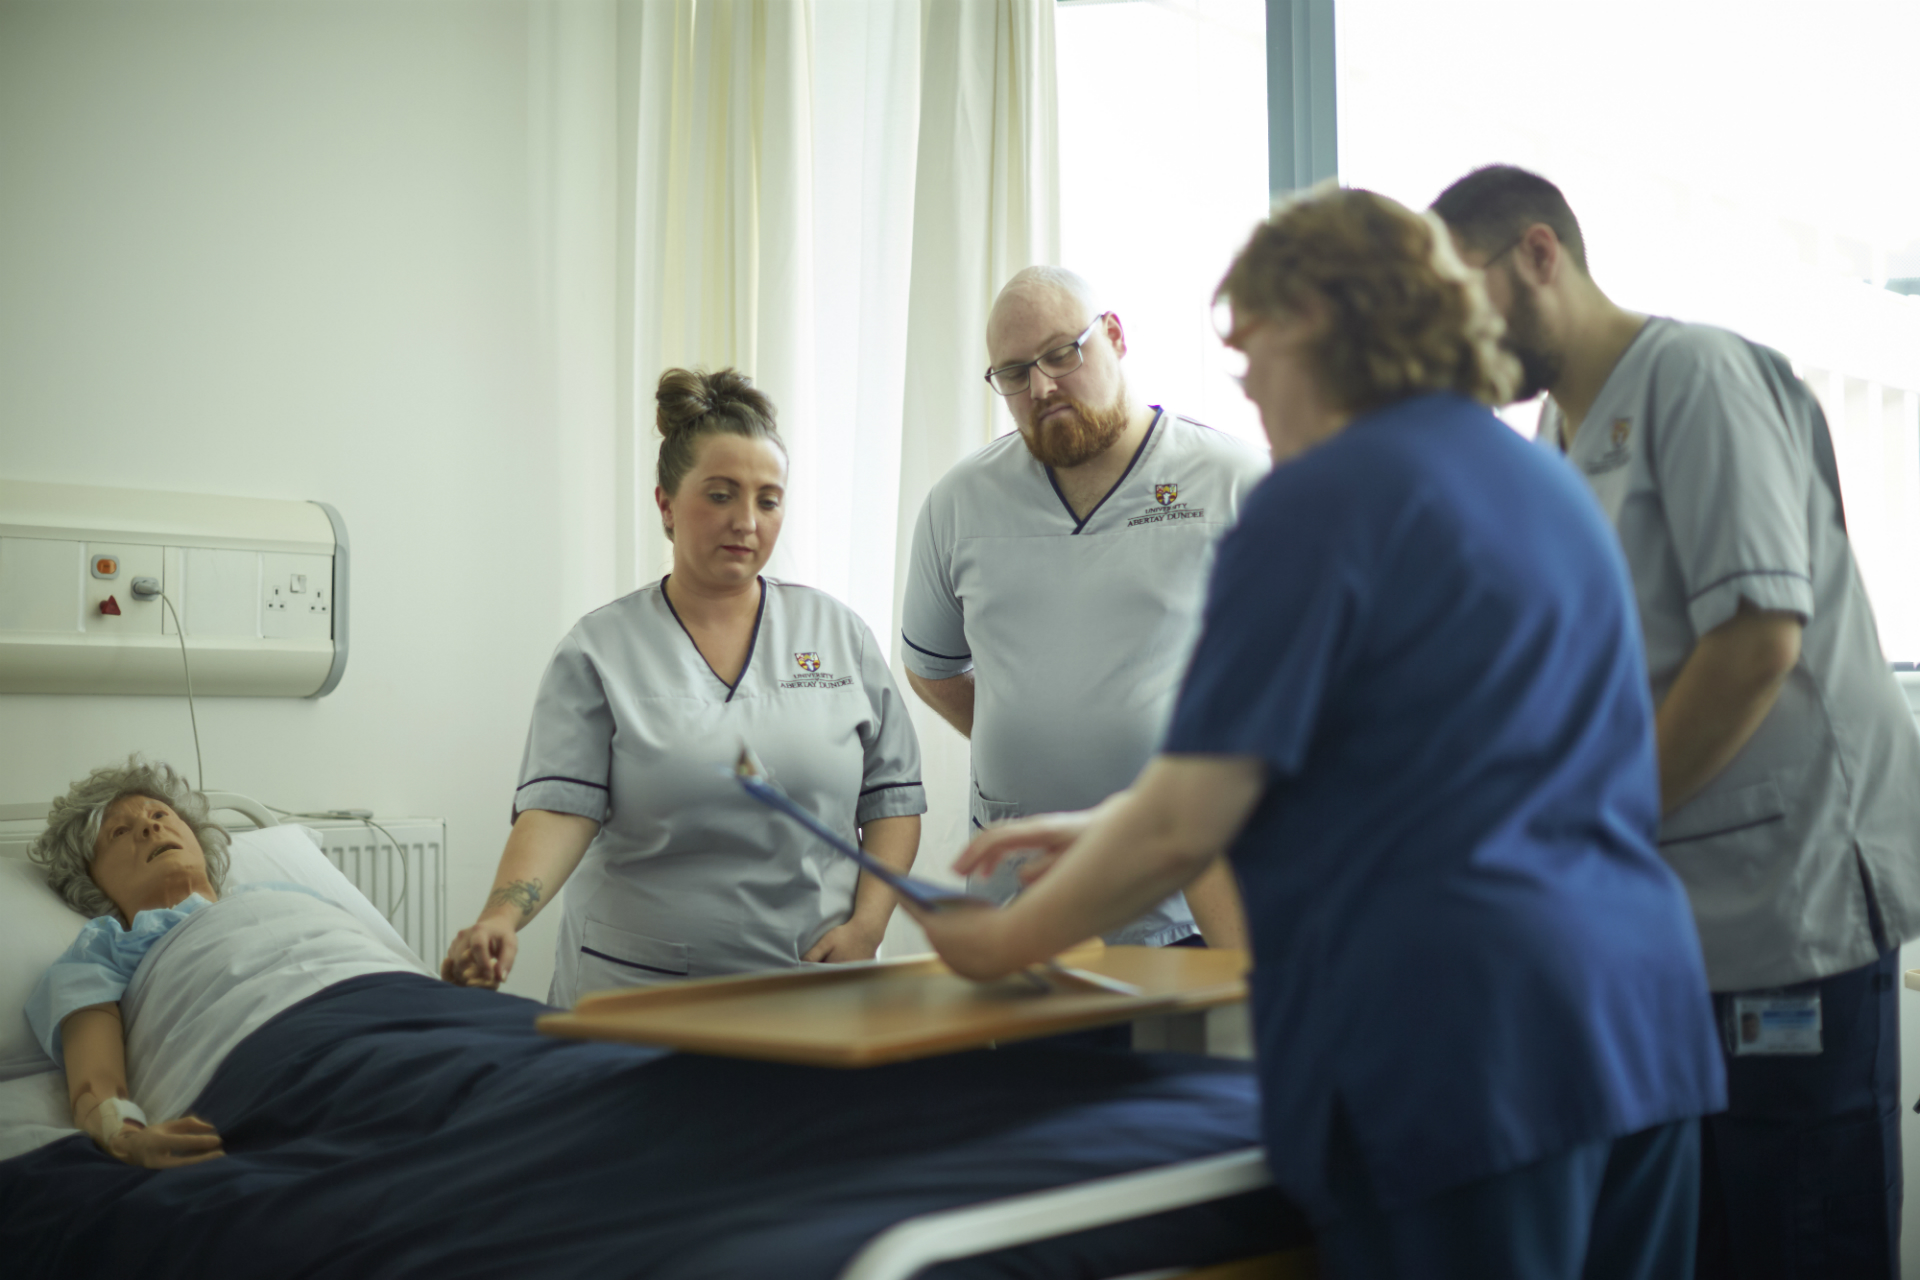 BLOG: Abertay and nursing